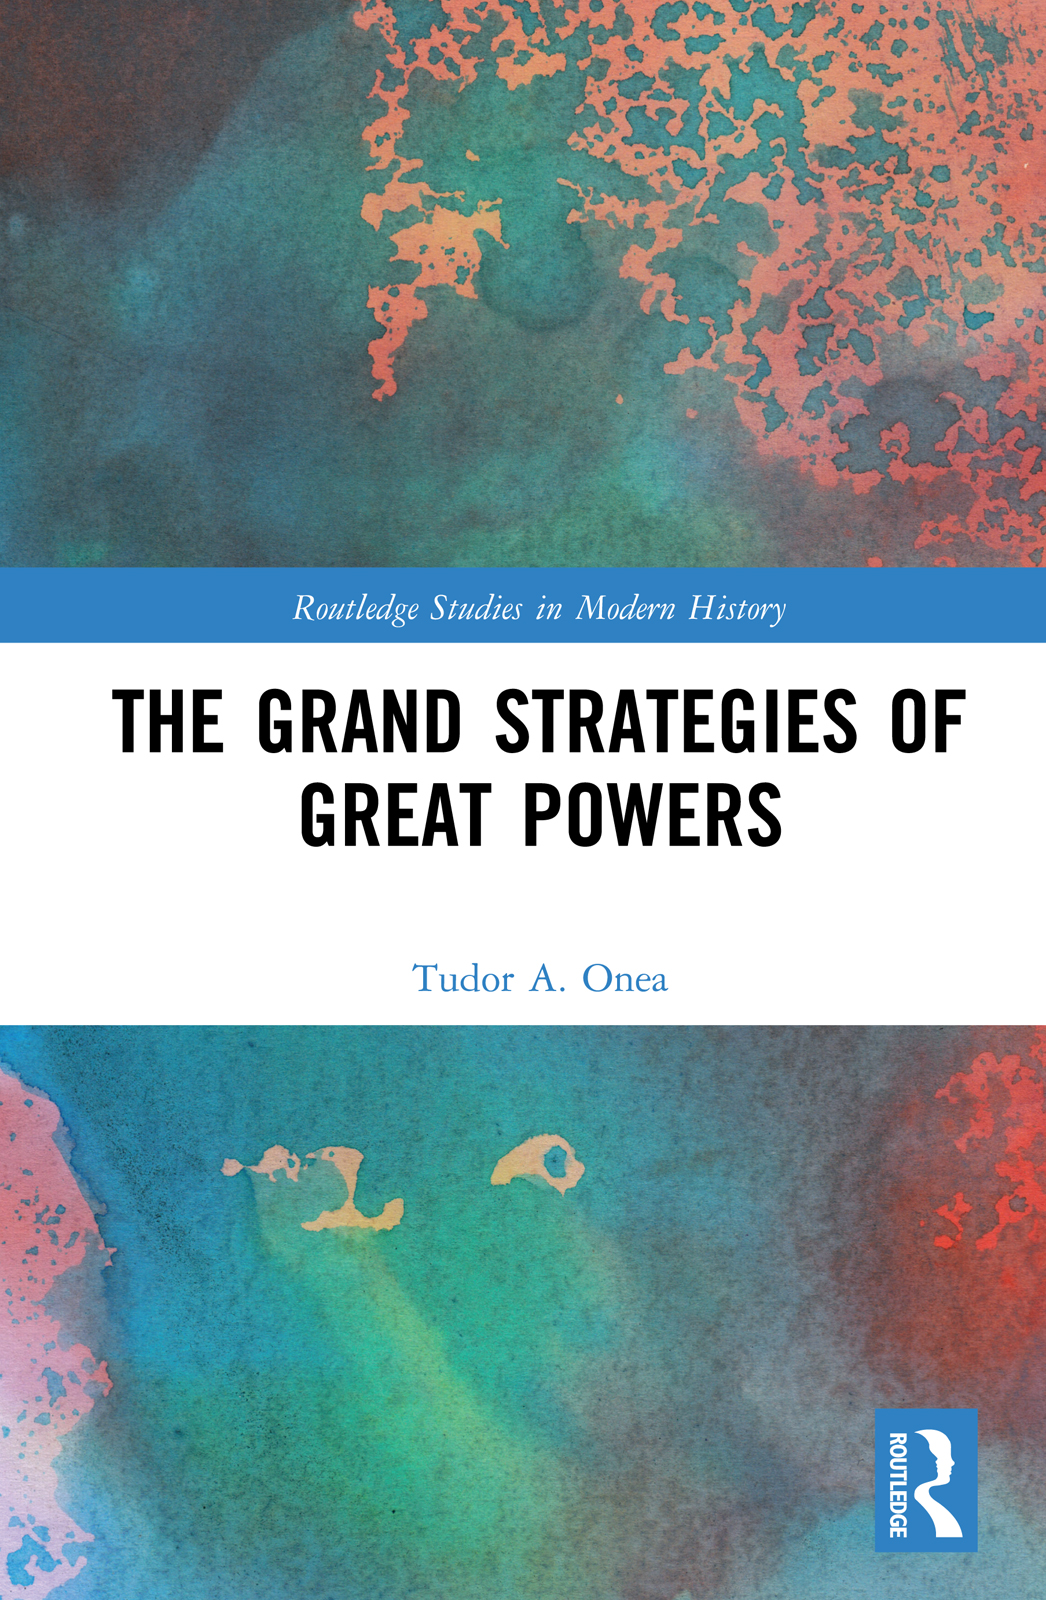 The Grand Strategies of Great Powers